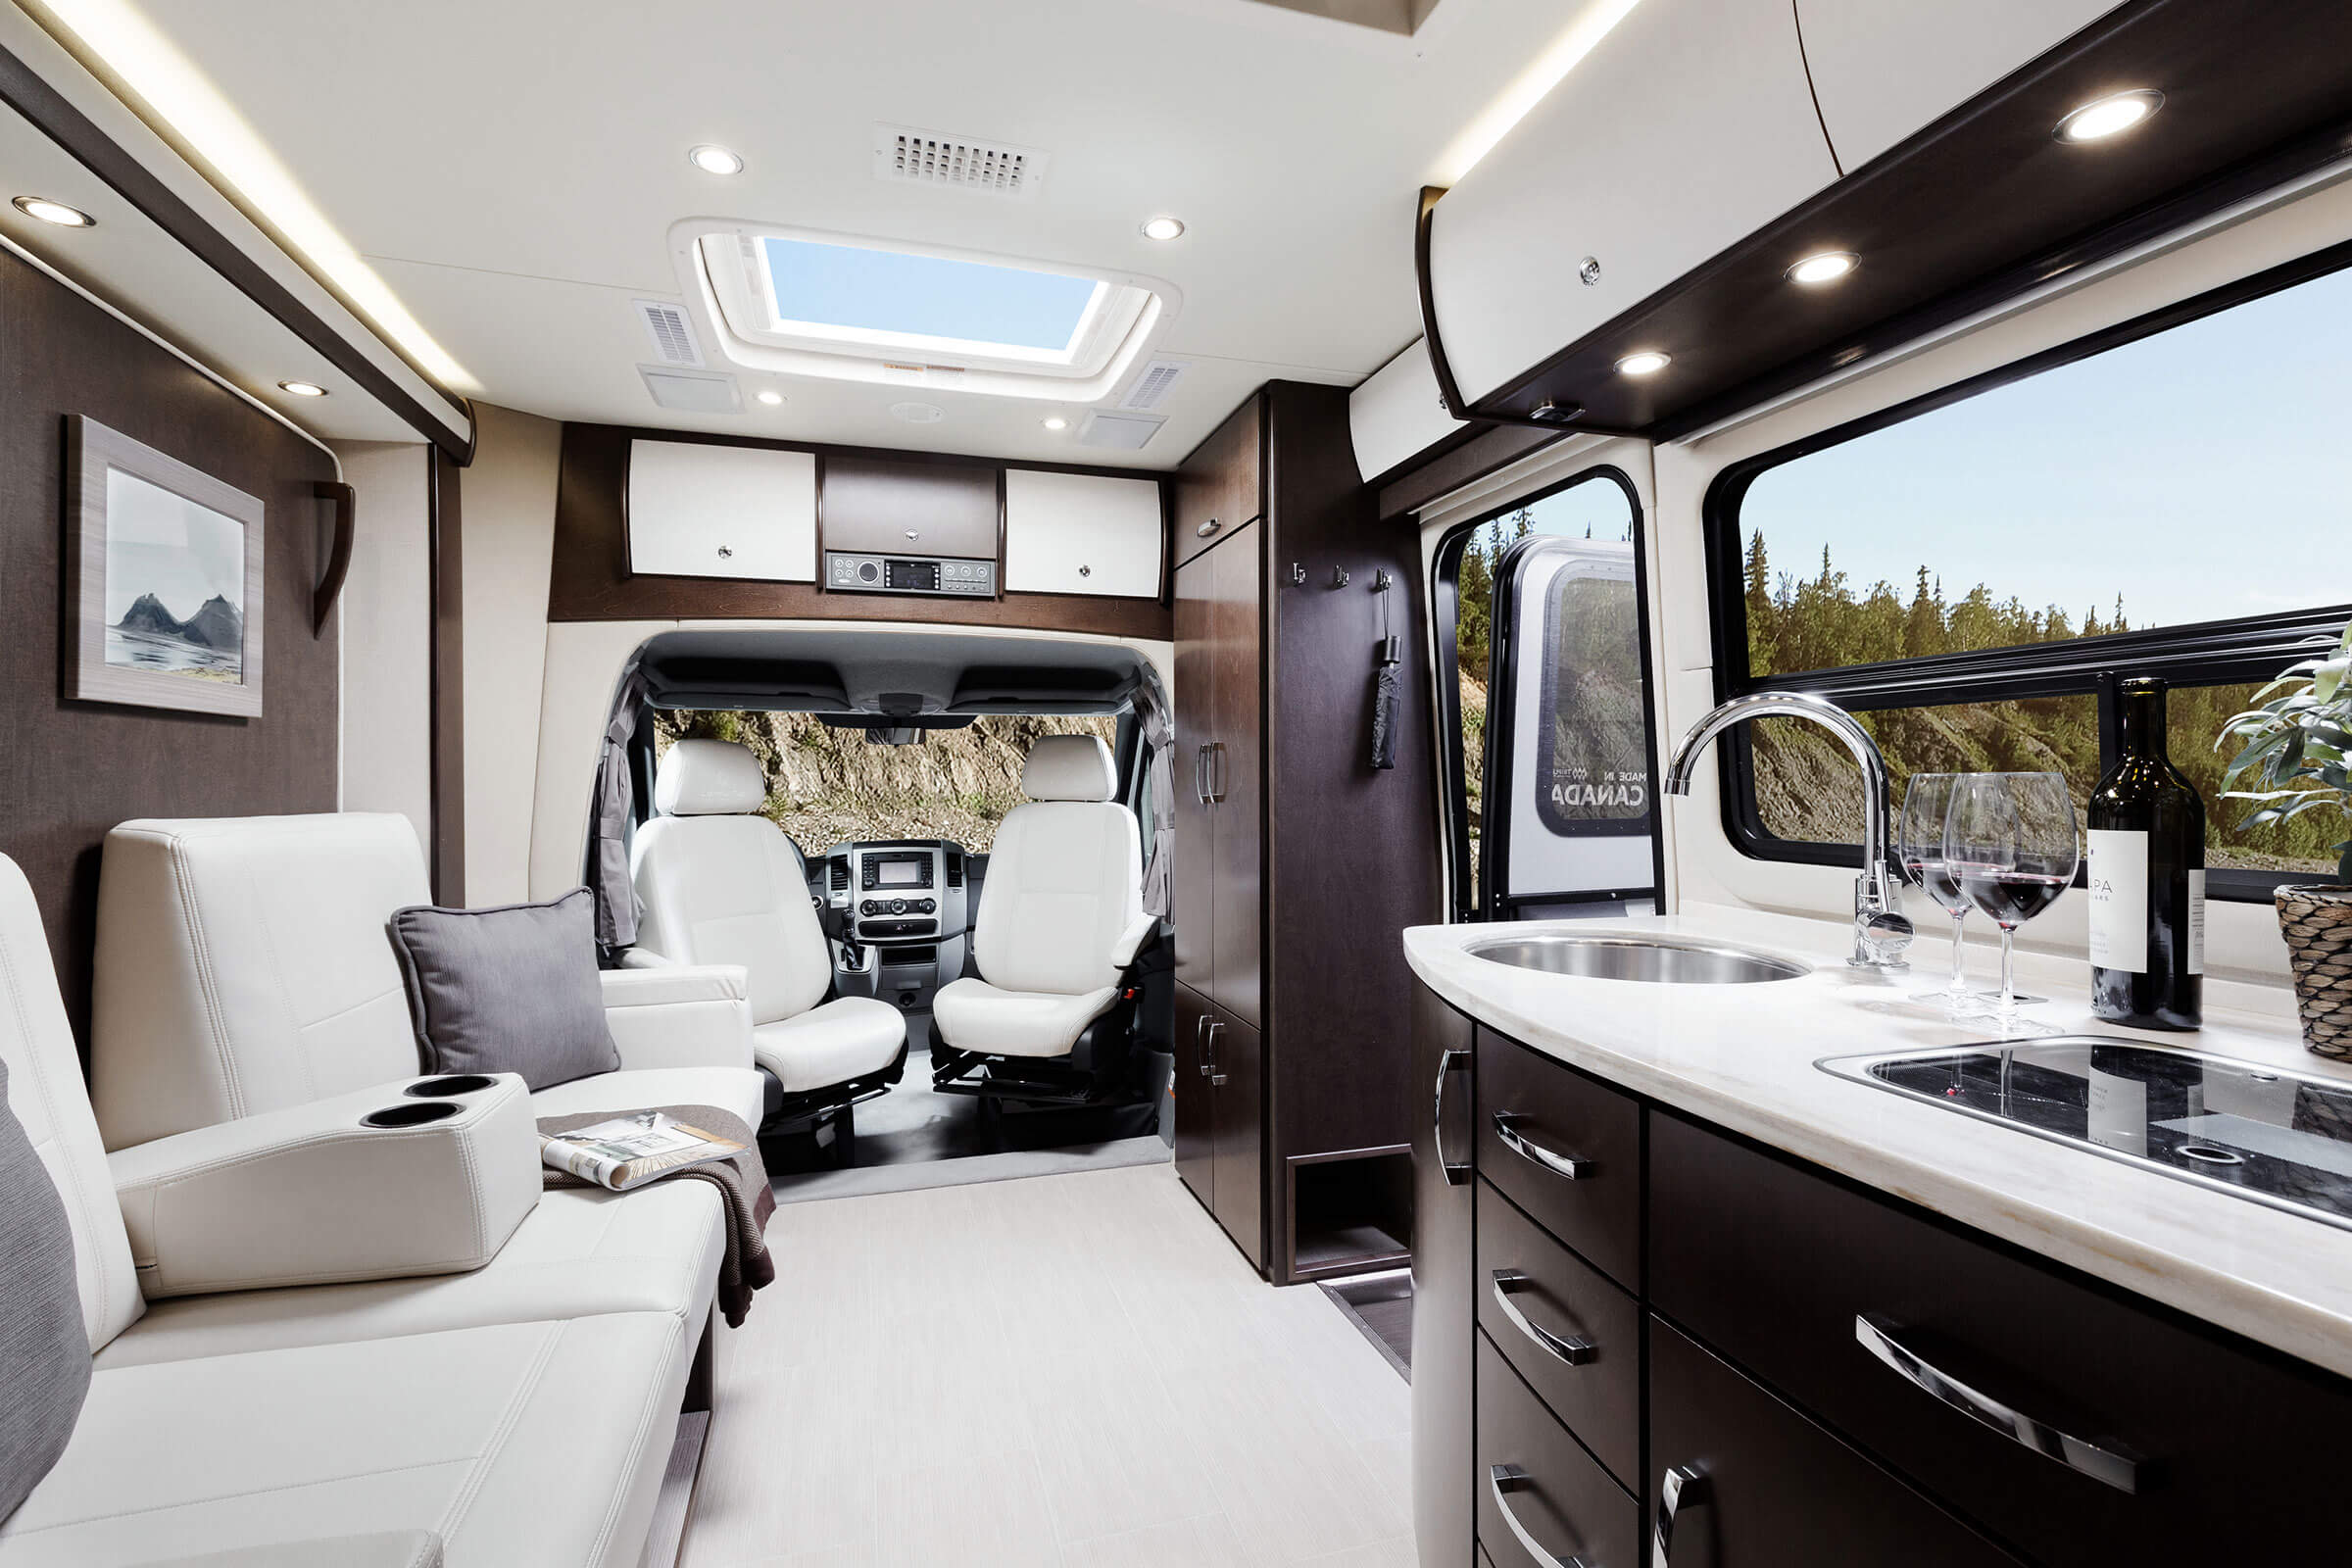 New Mb Sprinter 2018 >> Leisure Travel Vans Transforms The Open Road With The All-New 2016 Unity FX | Roaming Times